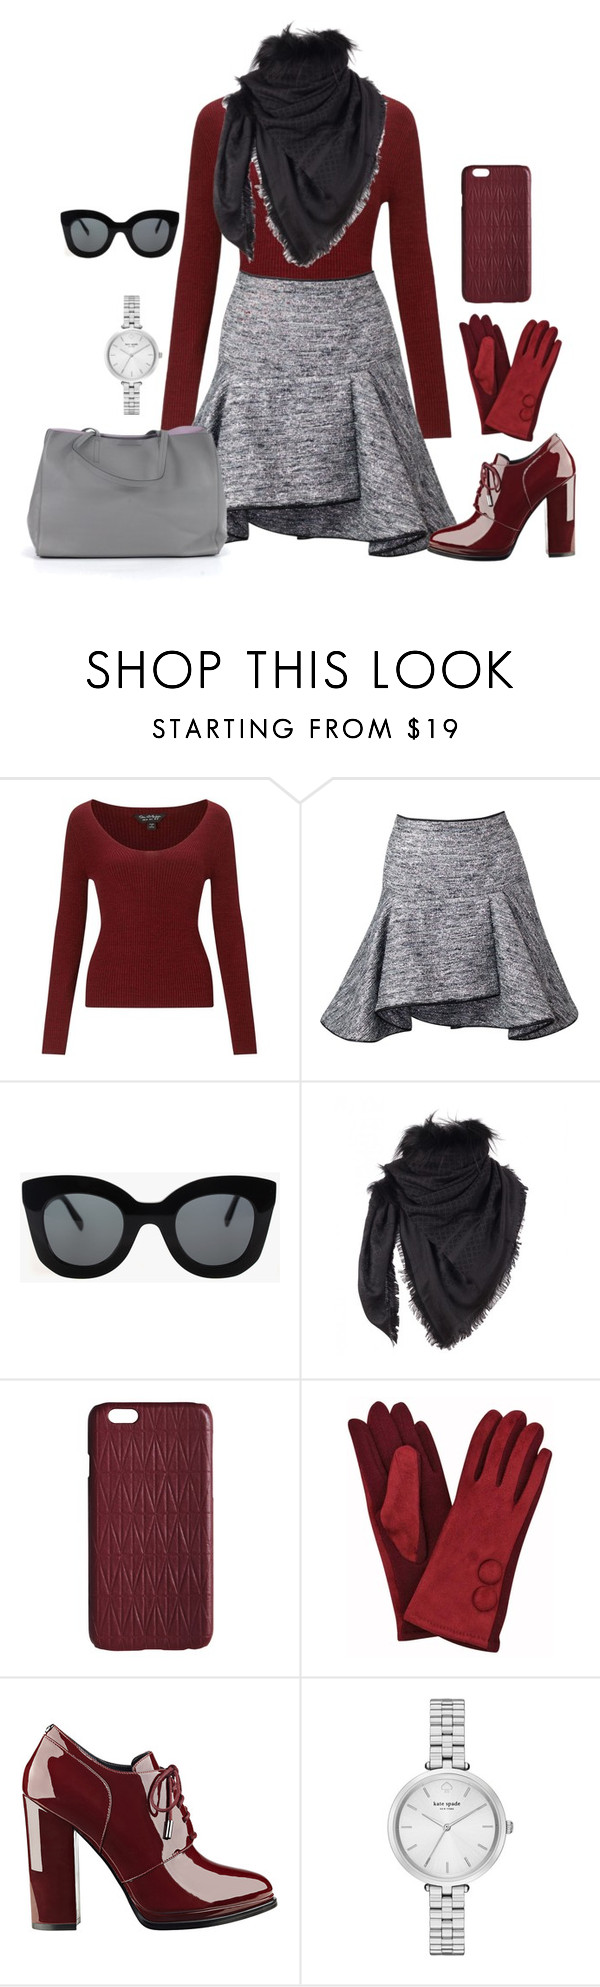 """""""Untitled #1593"""" by ebramos ❤ liked on Polyvore featuring Miss Selfridge, CÉLINE, Gucci, Dagmar, GUESS, Kate Spade and Banana Republic"""